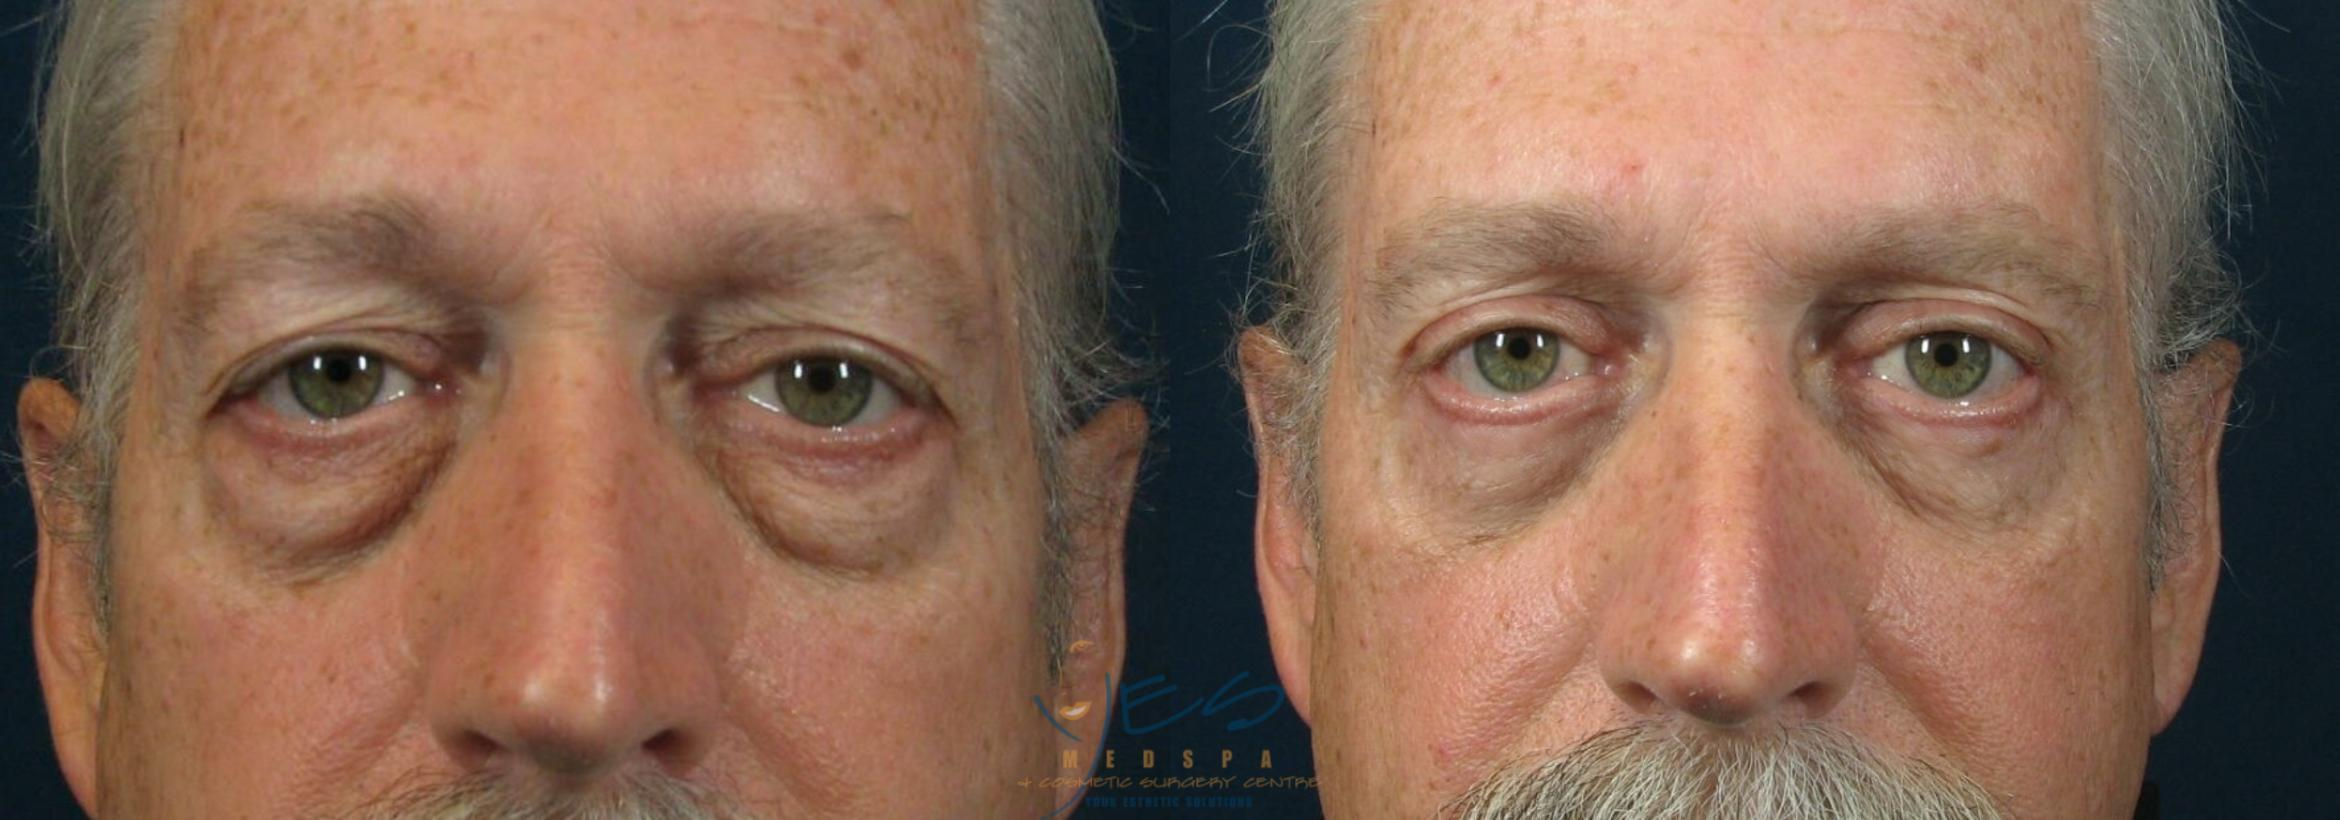 Upper Eyelid Blepharoplasty Case 89 Before & After View #1 | Vancouver, BC | YES Medspa & Cosmetic Surgery Centre